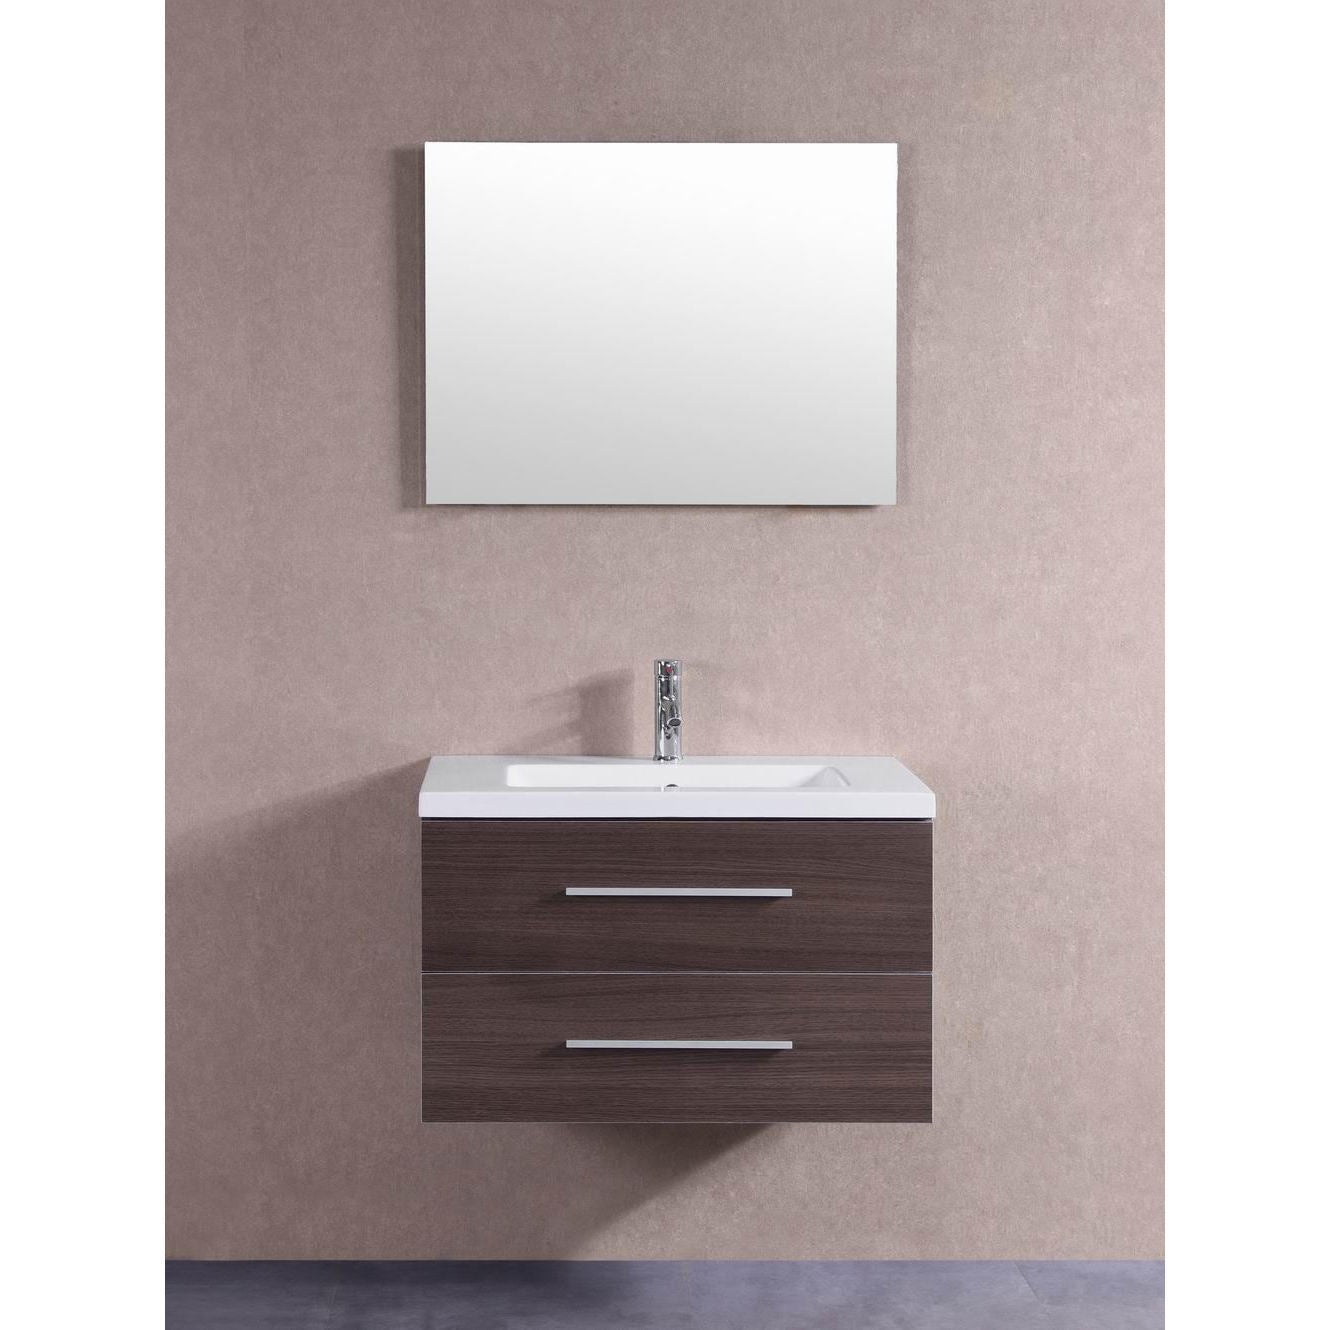 Shop 32 inch floating single sink bathroom vanity set free shipping today overstock 11996085